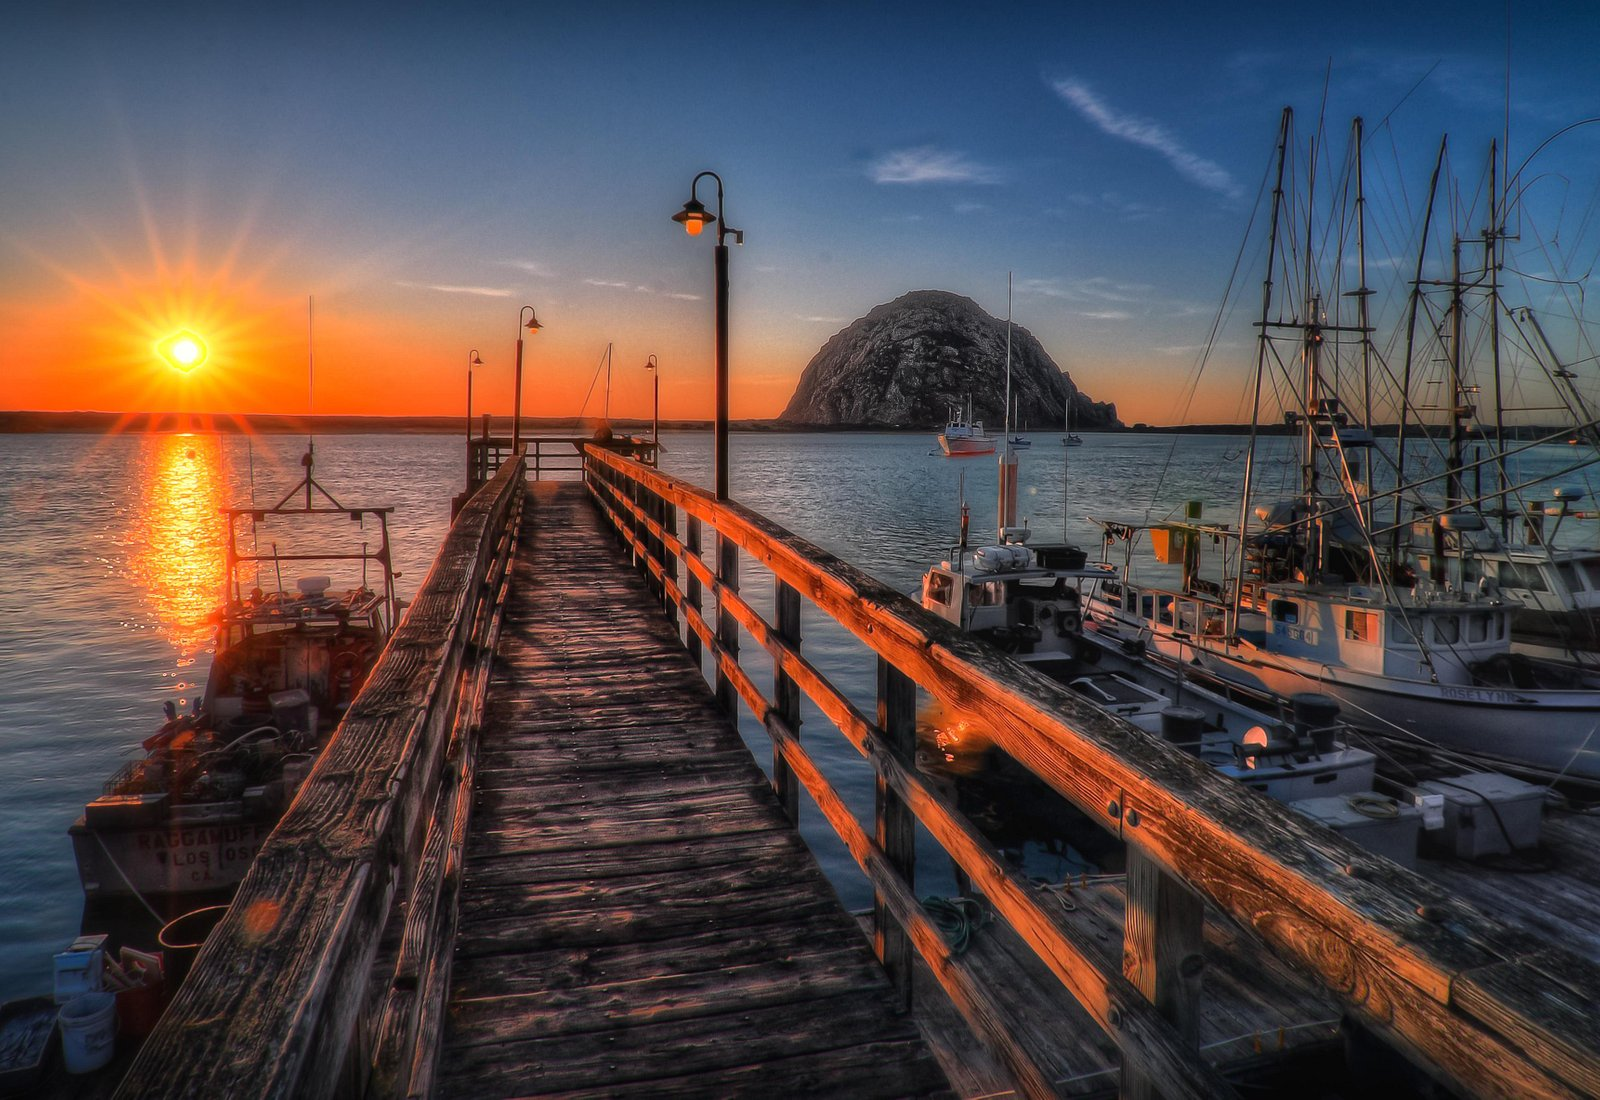 Morro Rock and the bay at sunset